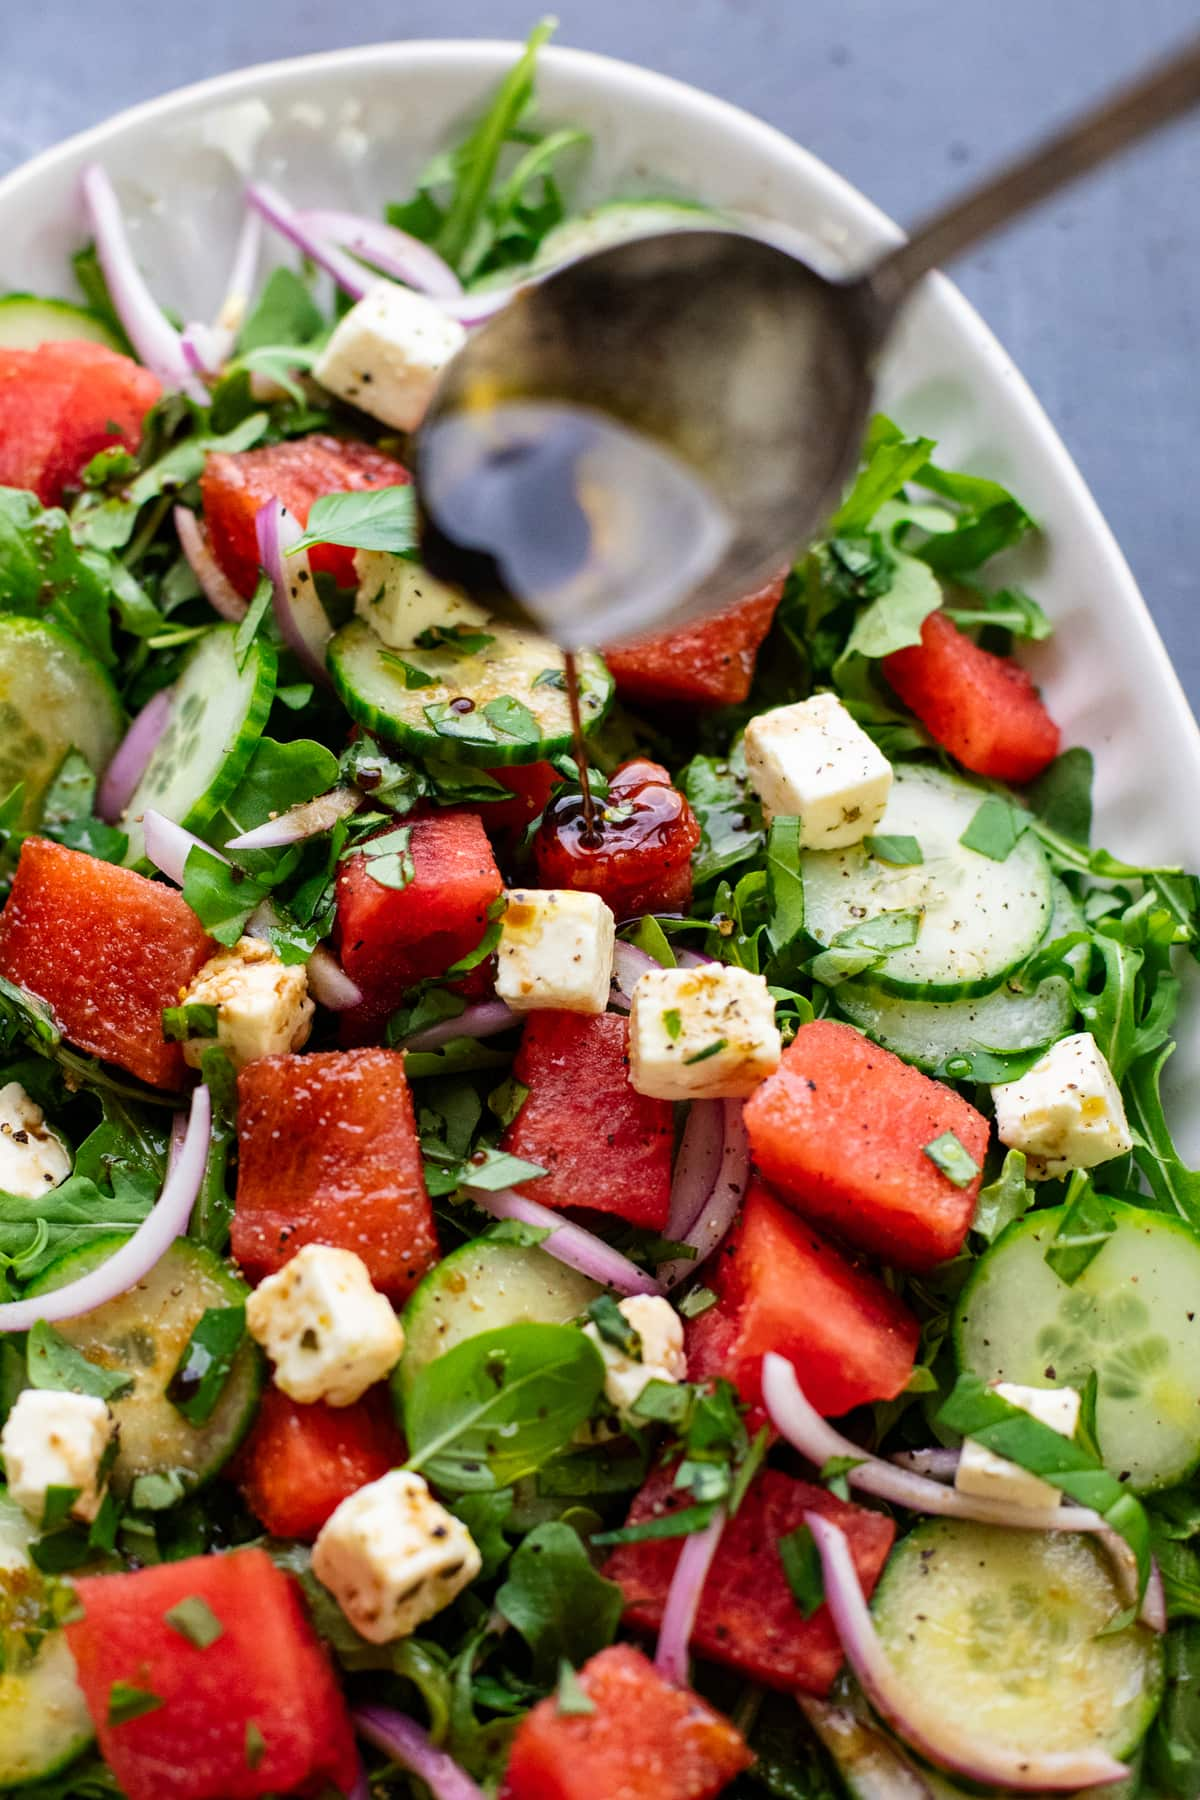 spoon drizzling dressing over watermelon salad.